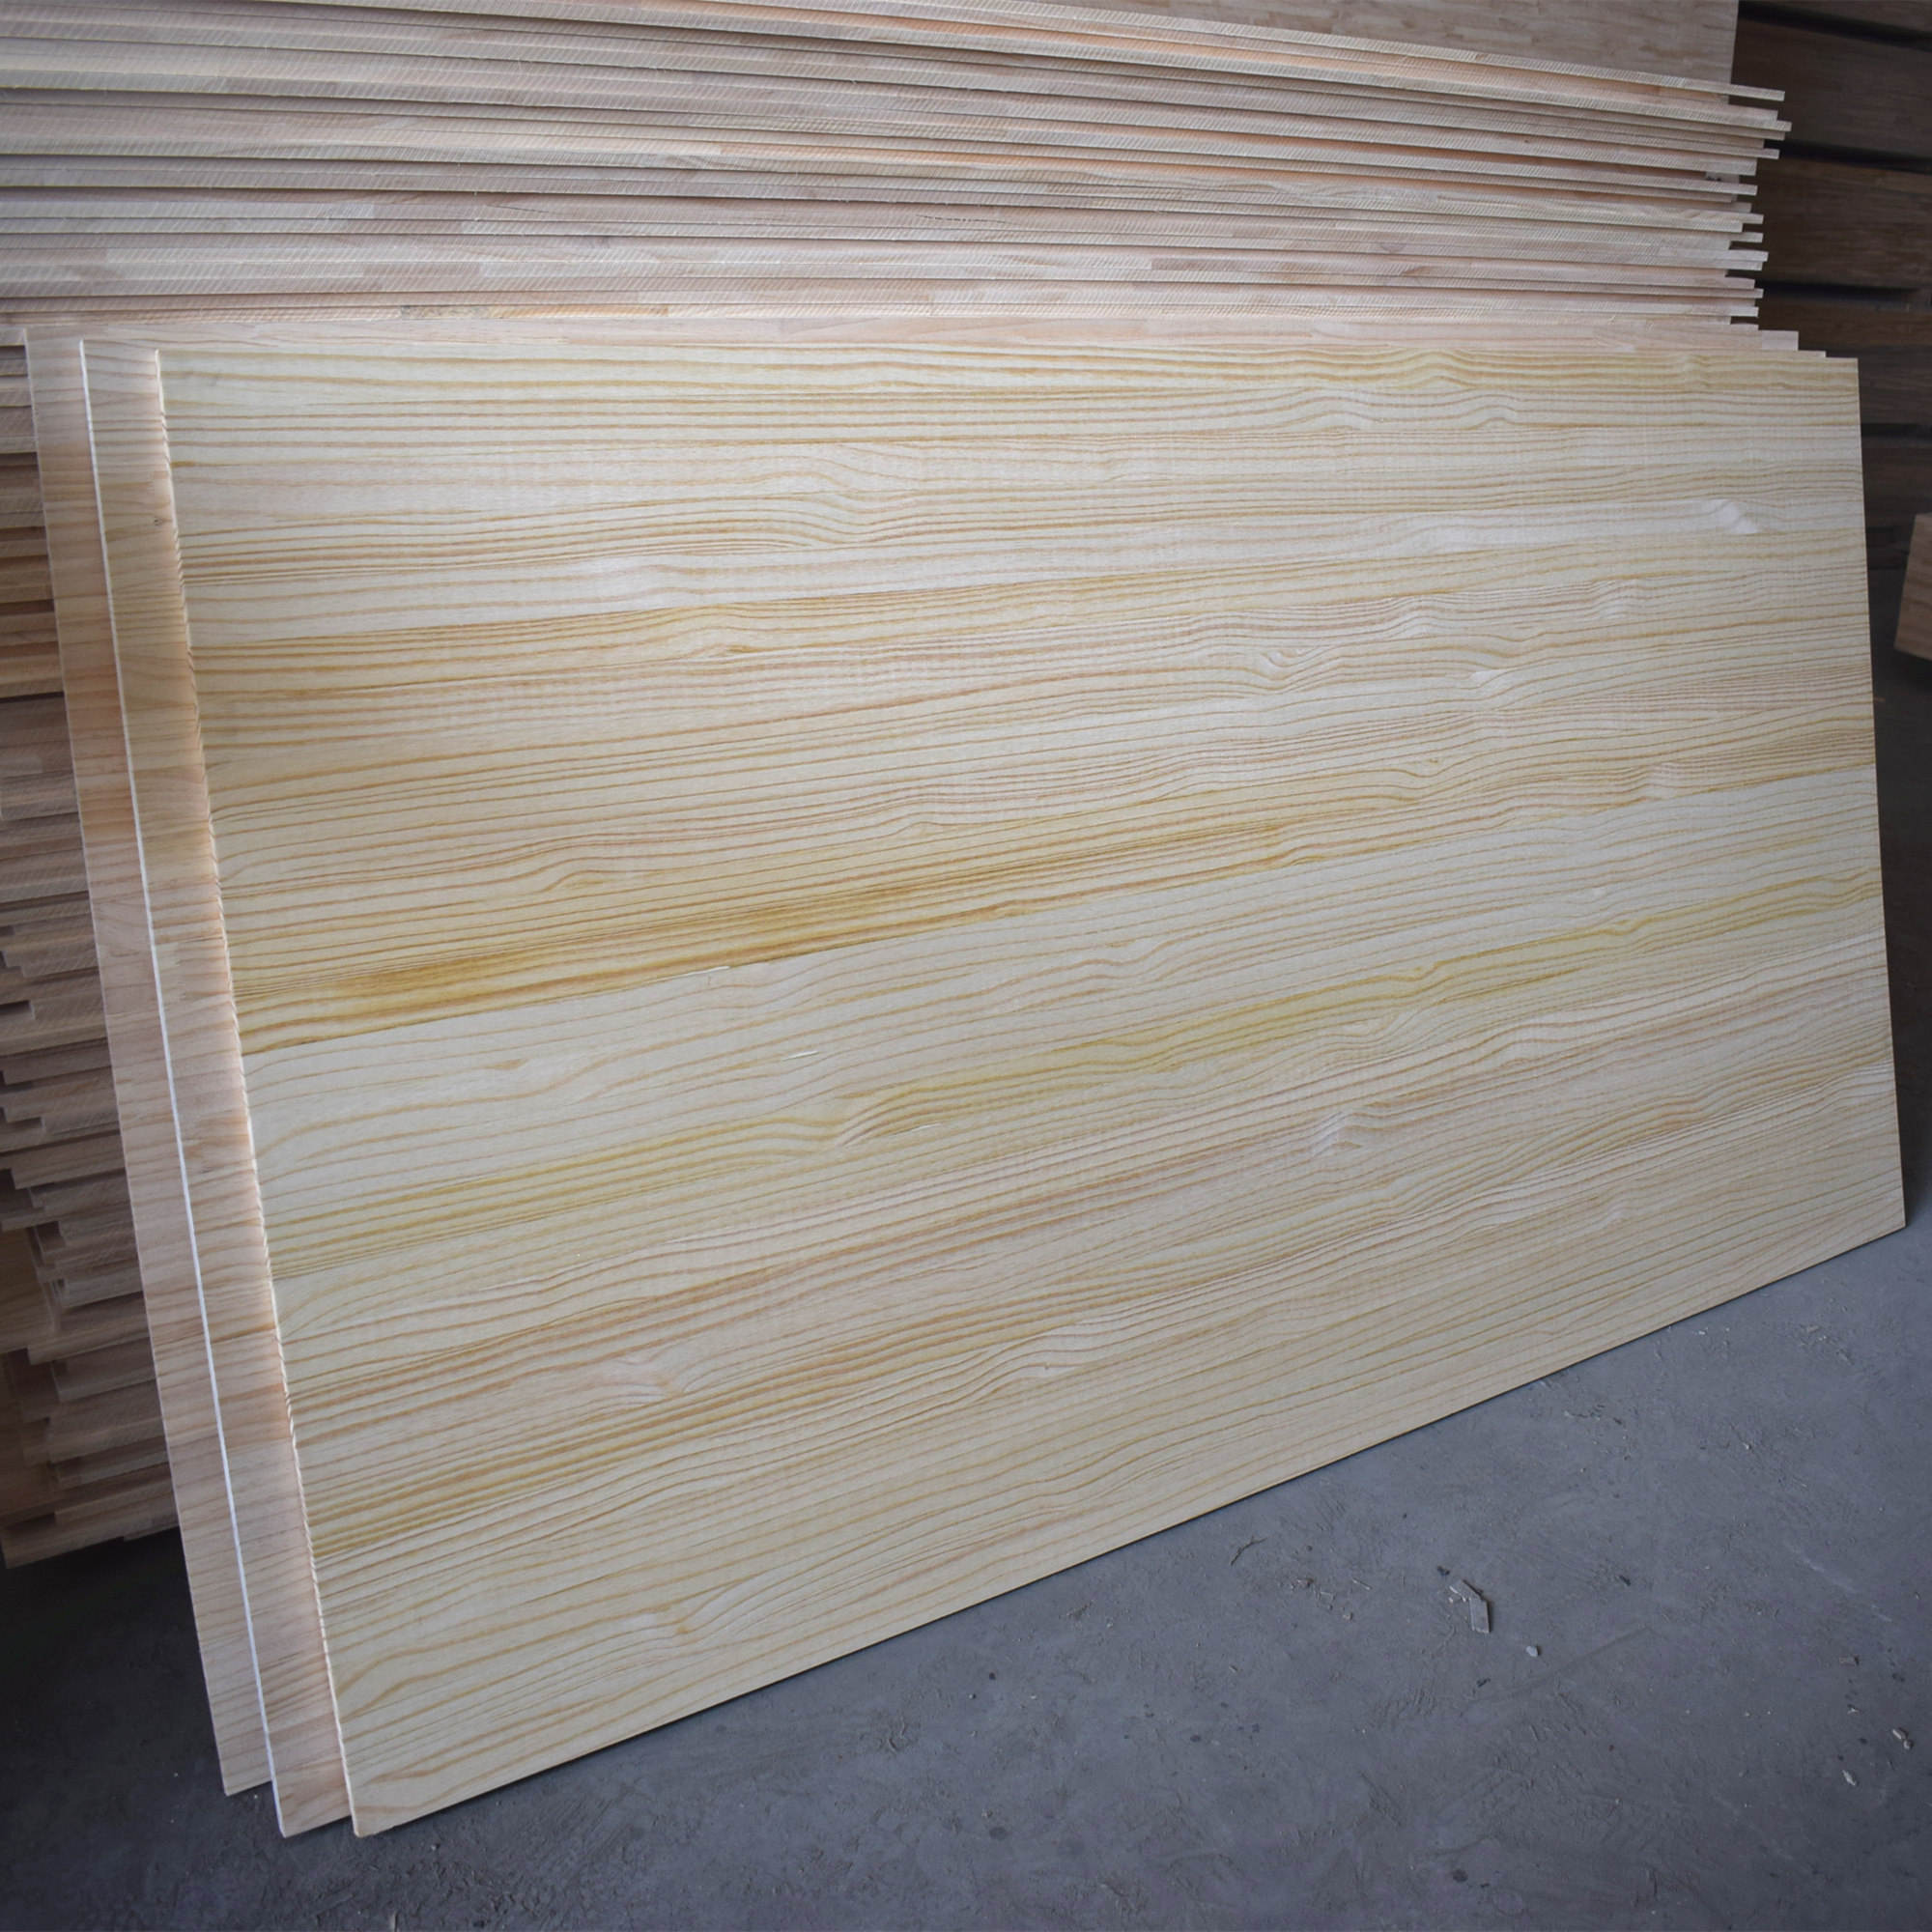 Solid Wood [ Lumber ] Solid Pine Wood High Quality Pine Lumber Solid Wood Timber Edge Glued Board Factory Direct Supplying For Wholesale